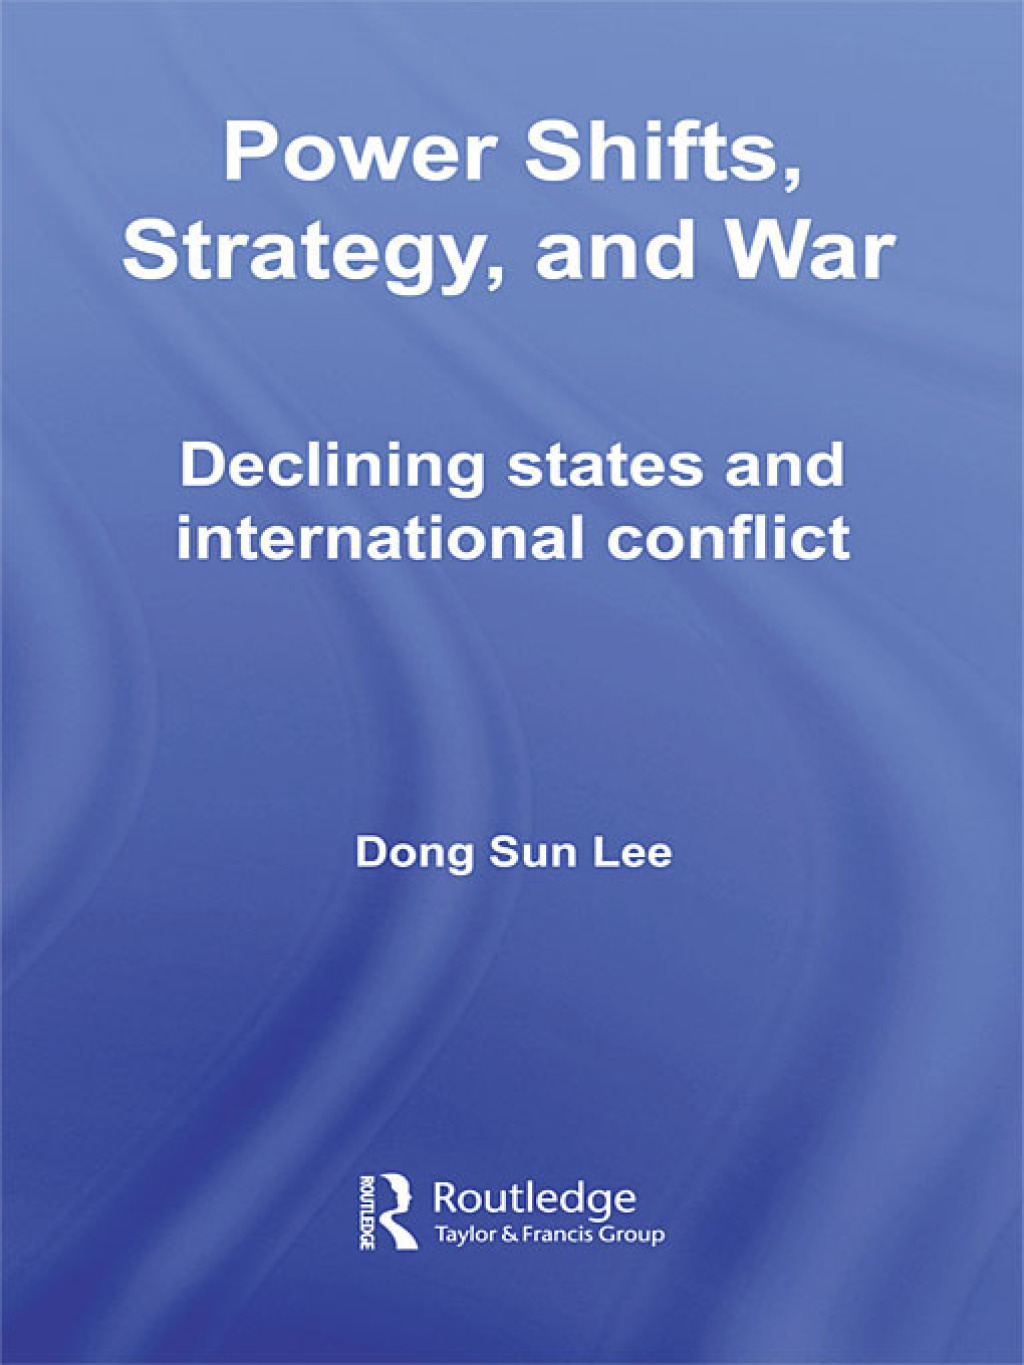 Power Shifts, Strategy and War (ebook) eBooks